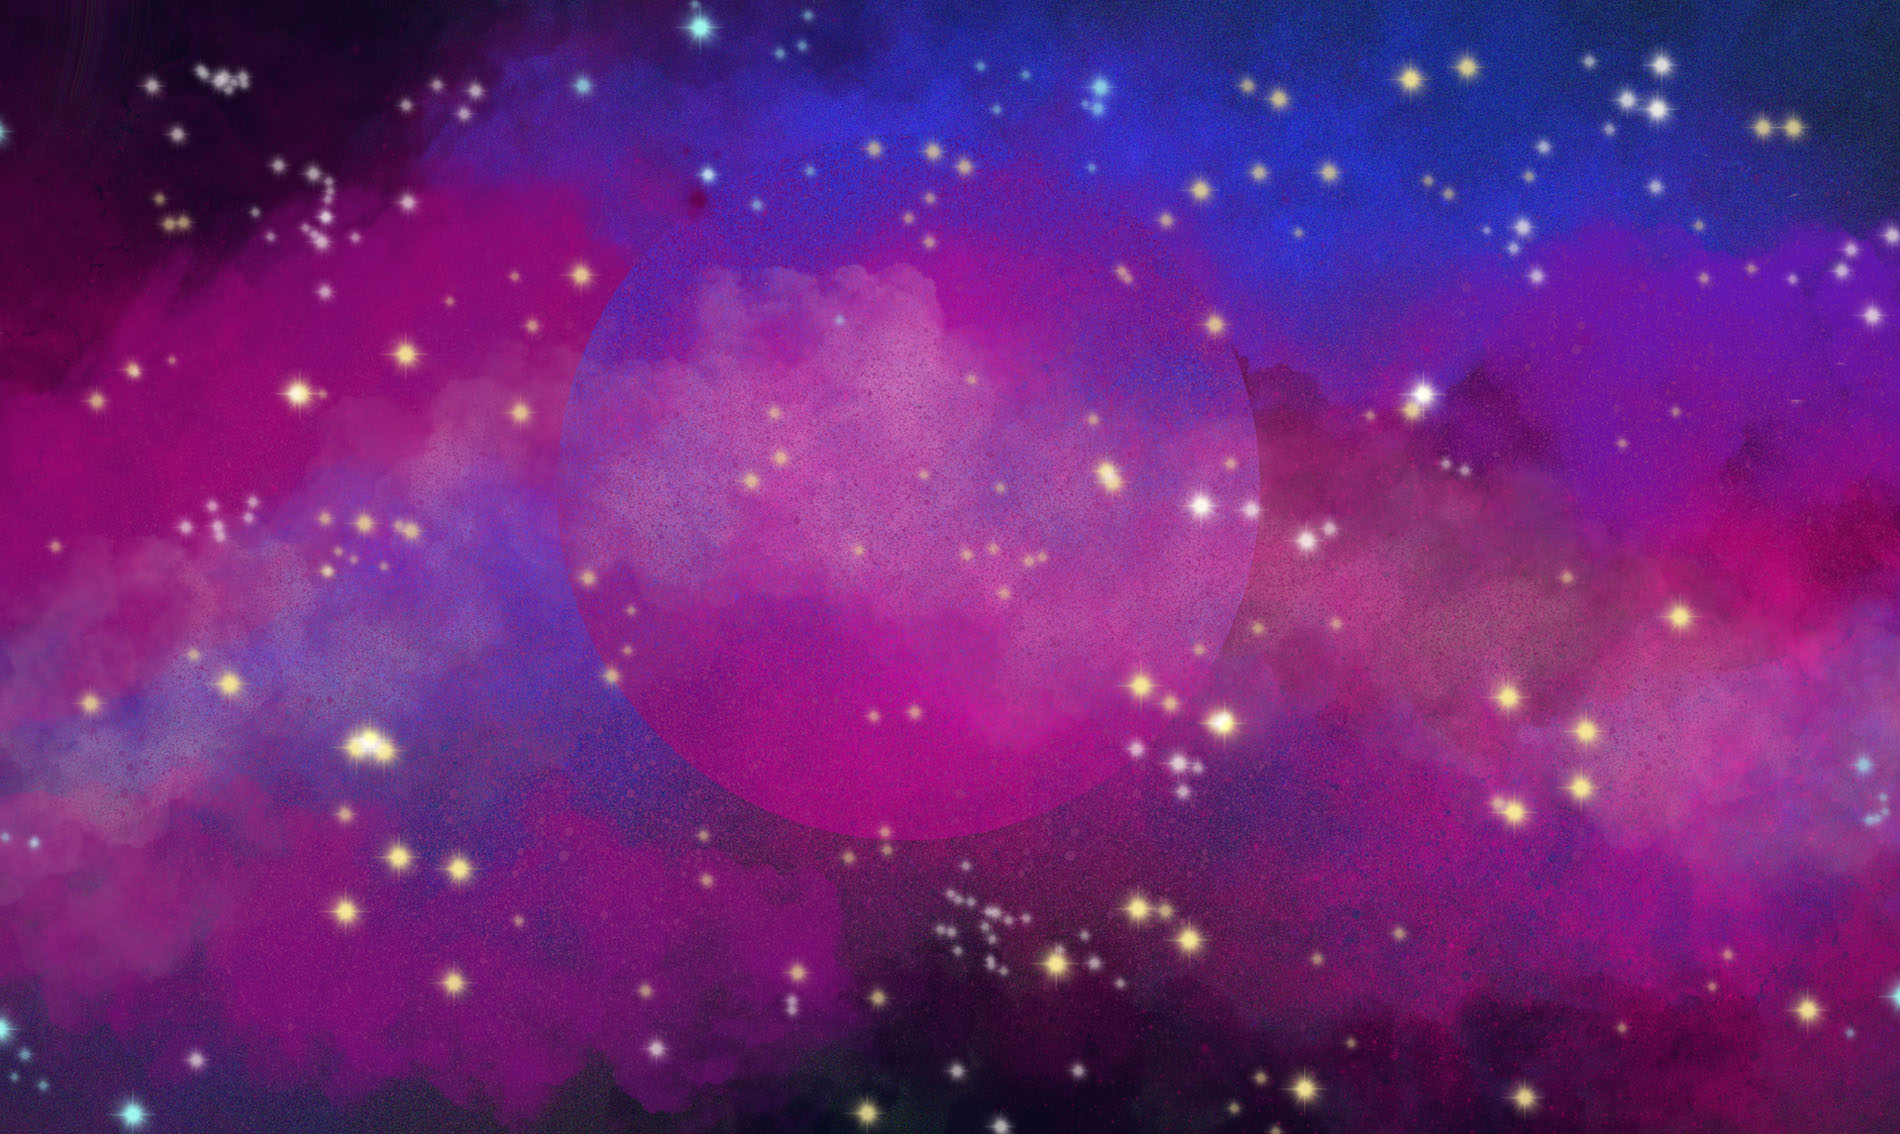 Abstract Space example image 2